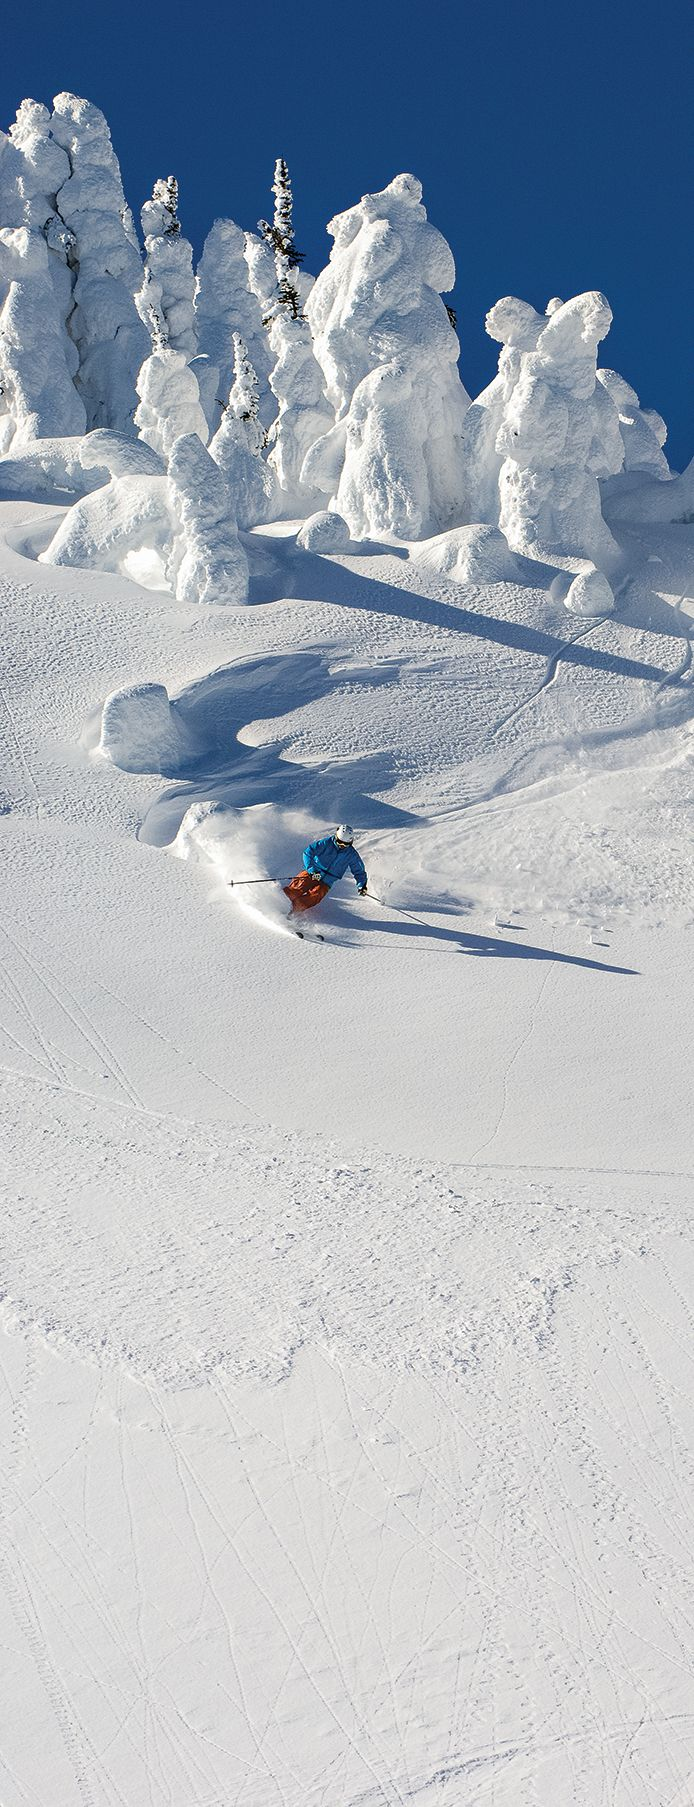 More interested in skiing killer terrain with your family than focusing on your flask? Then check out this ski resort.